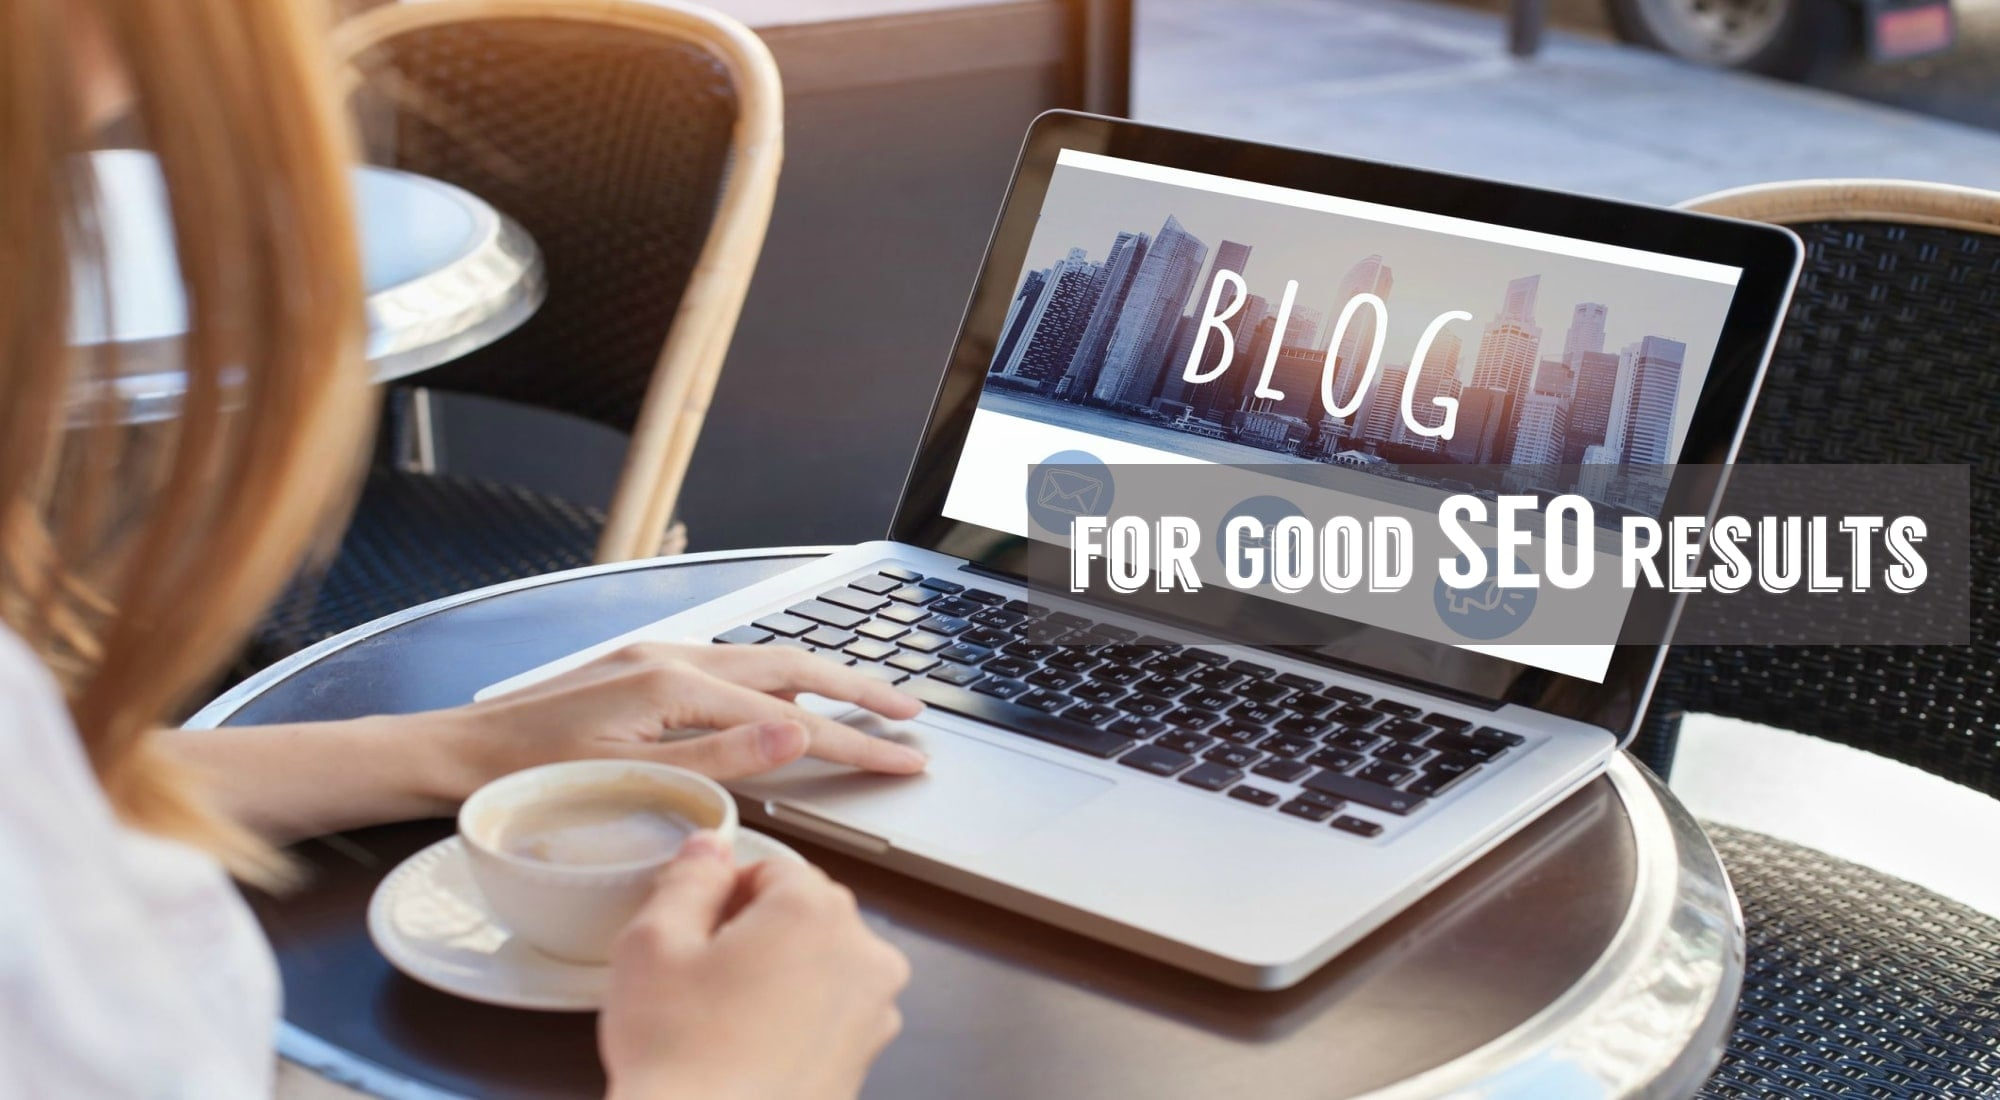 Let's Blog for Good SEO Results